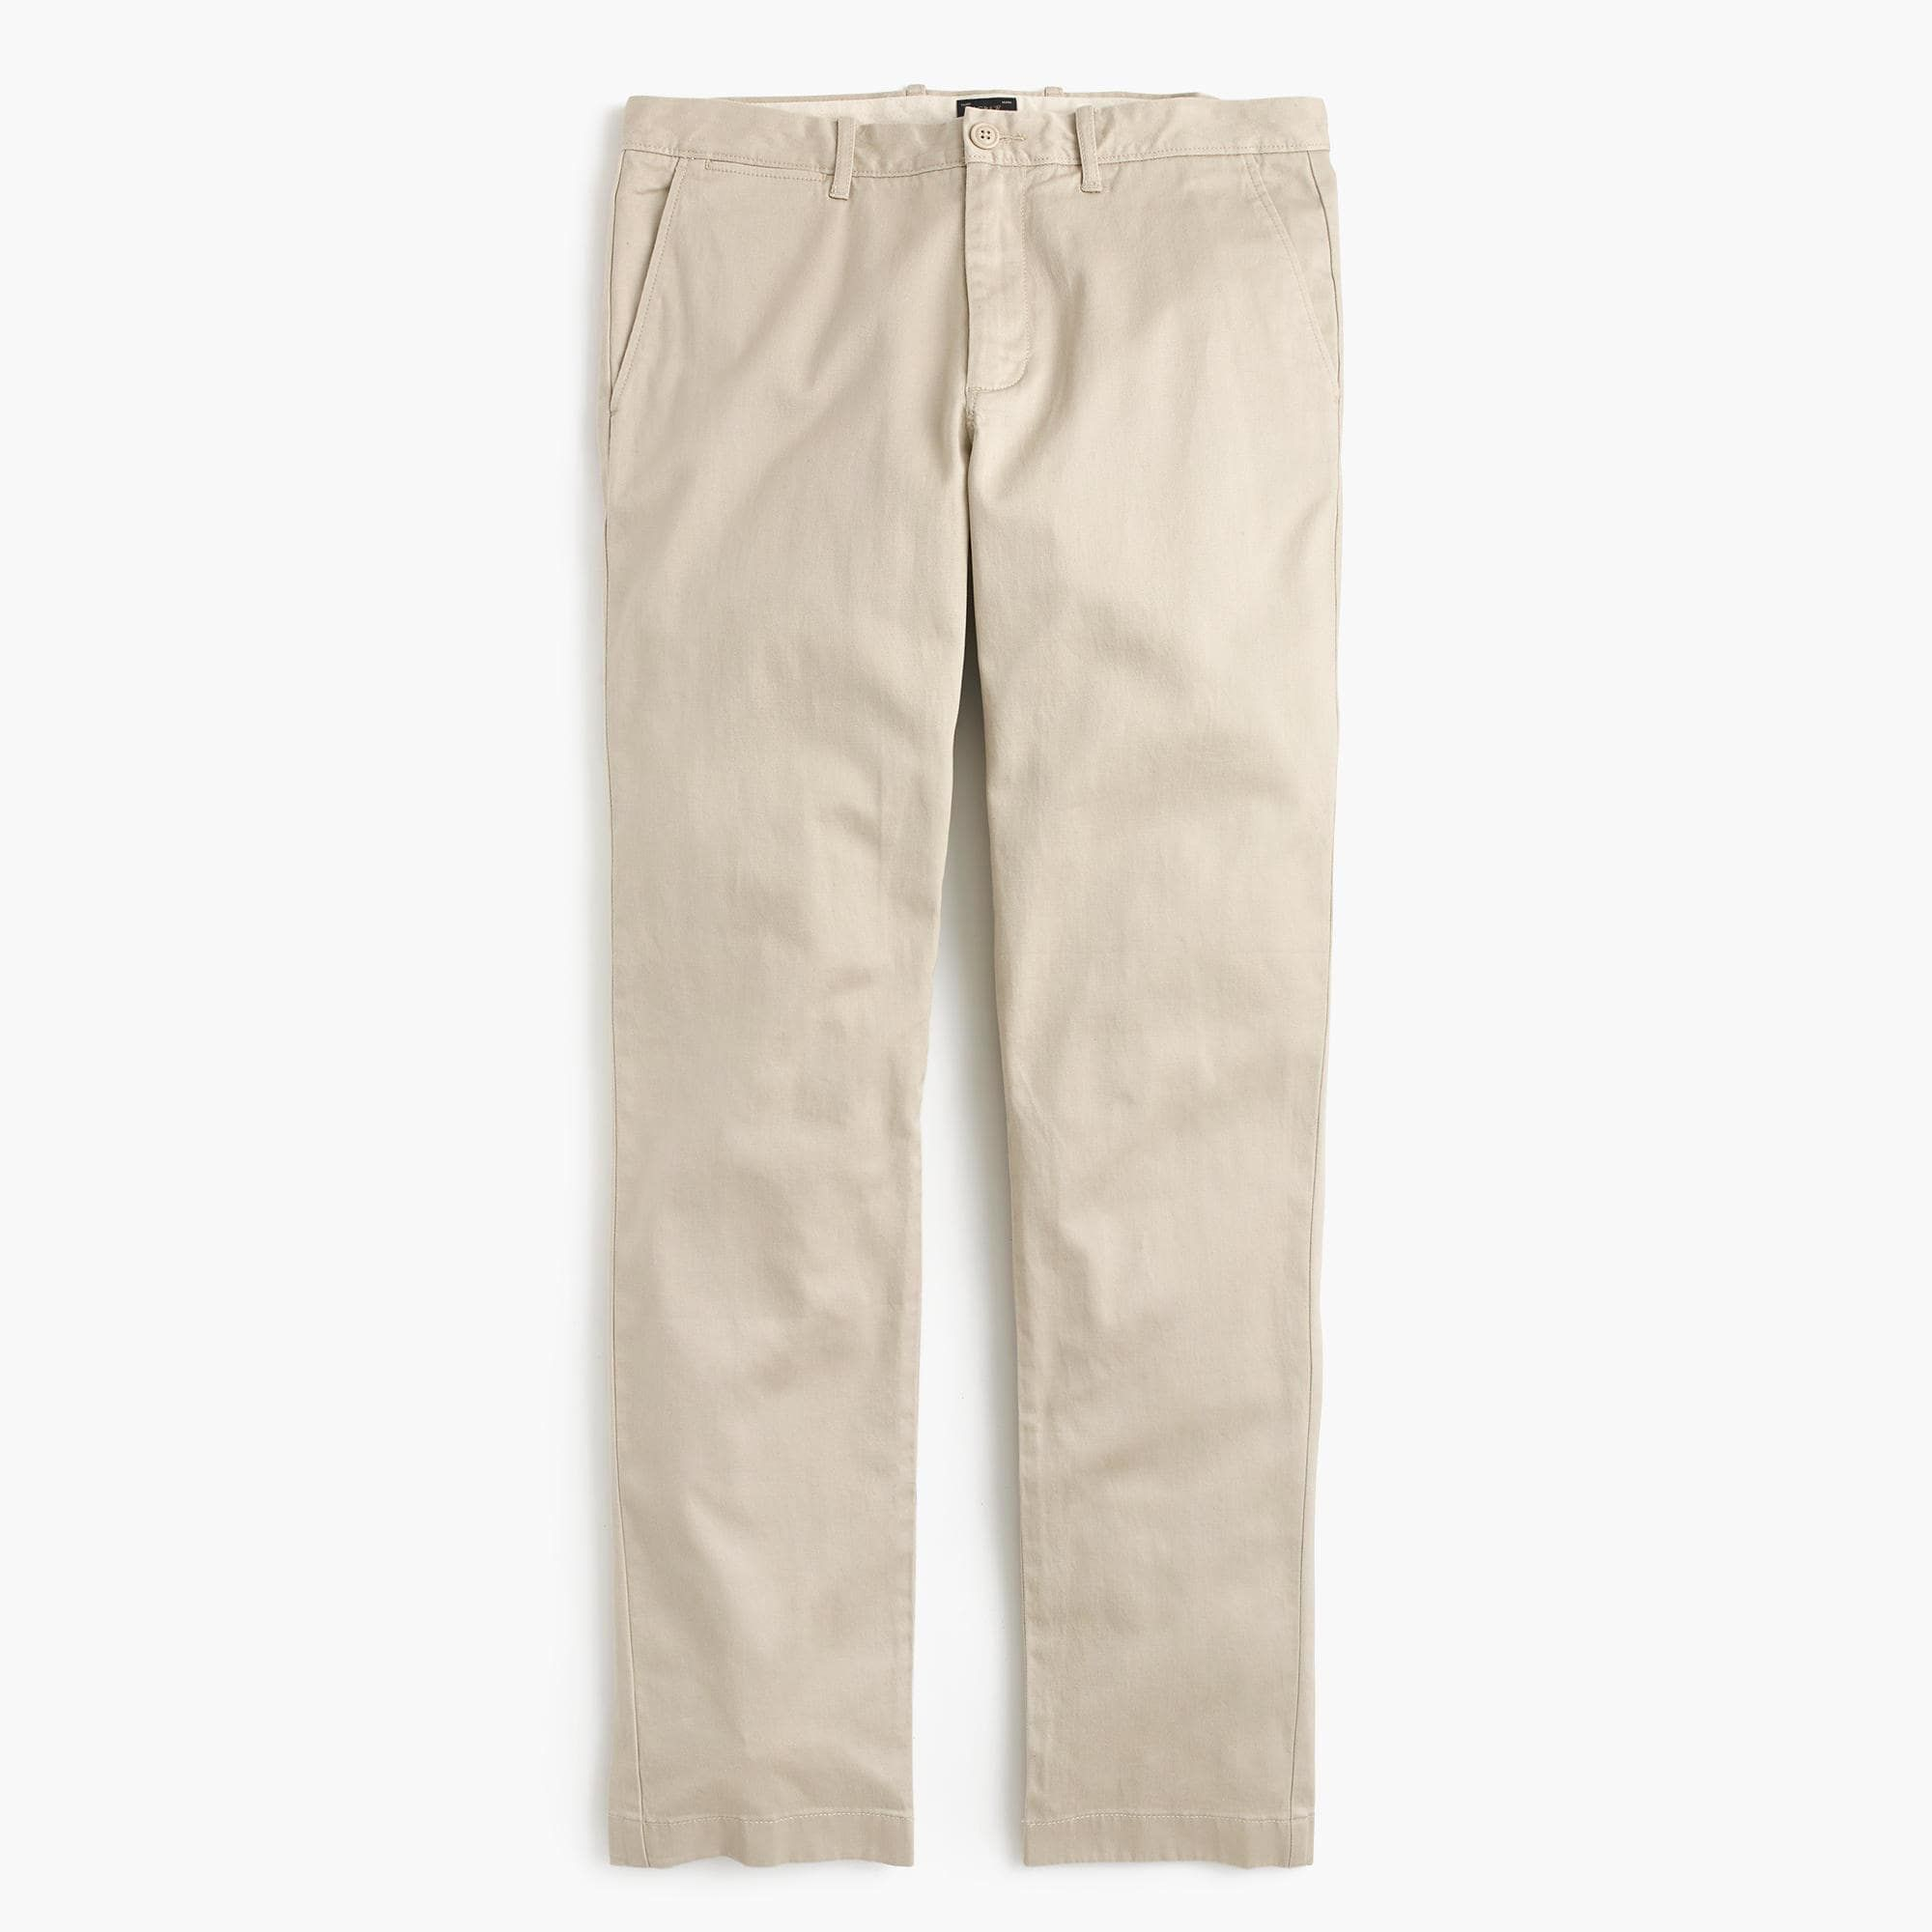 67ee3d817aa4 J.Crew - 770 Straight-fit pant in stretch chino